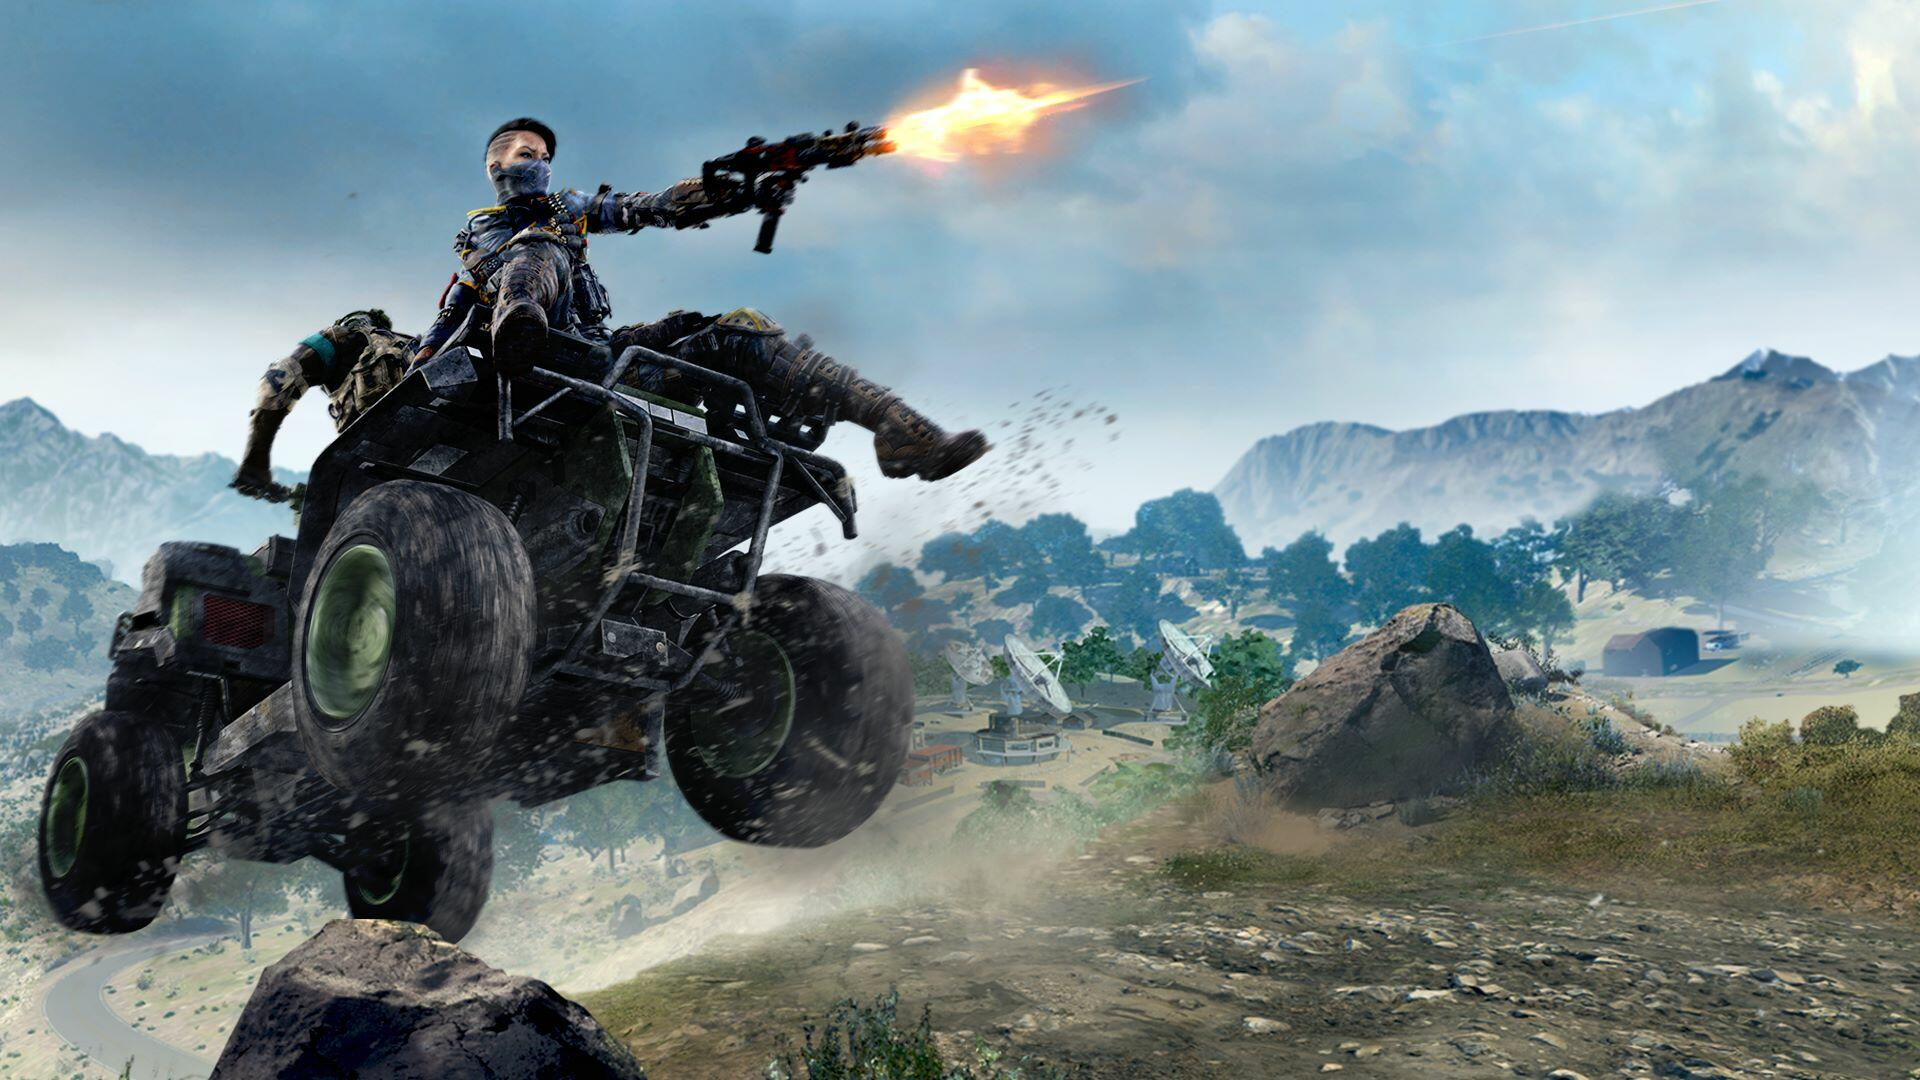 Black Ops 4: Blackout Has a New Limited Time Mode That Lets Players Respawn